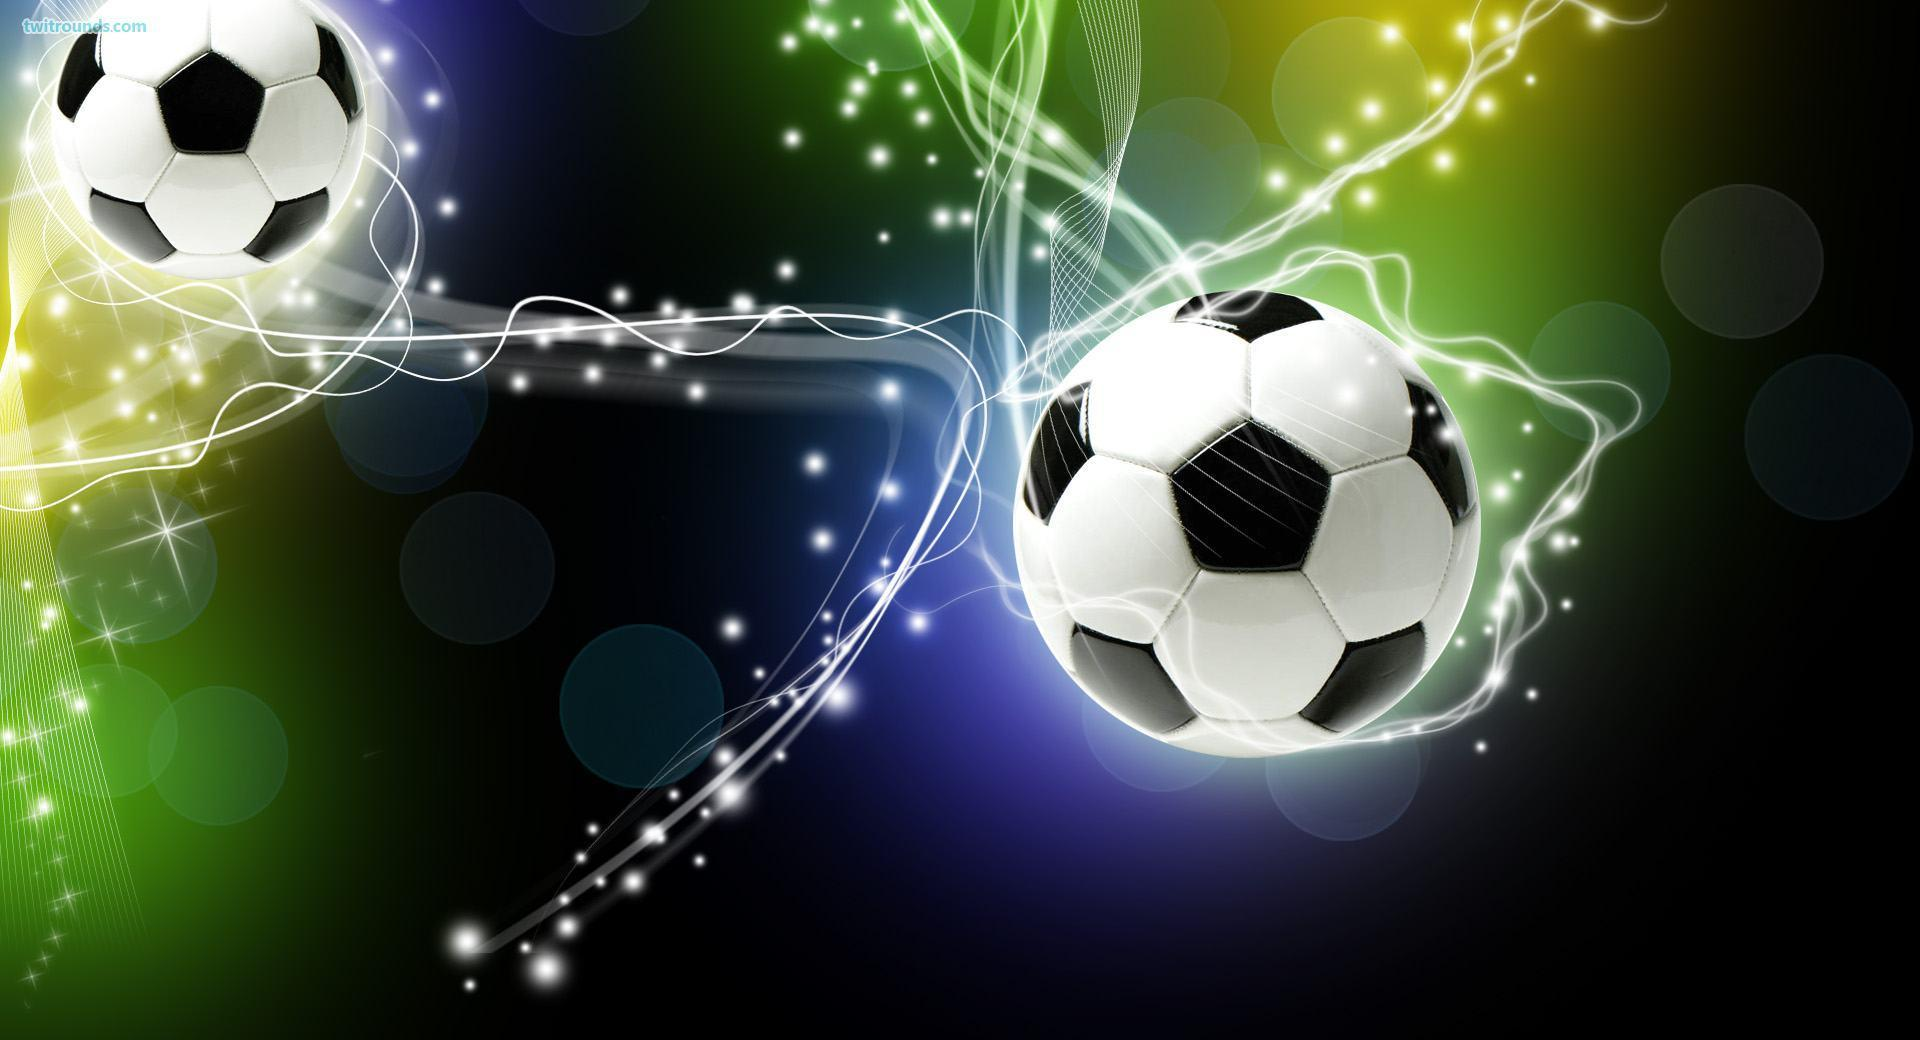 Awesome Soccer Backgrounds 1920x1040